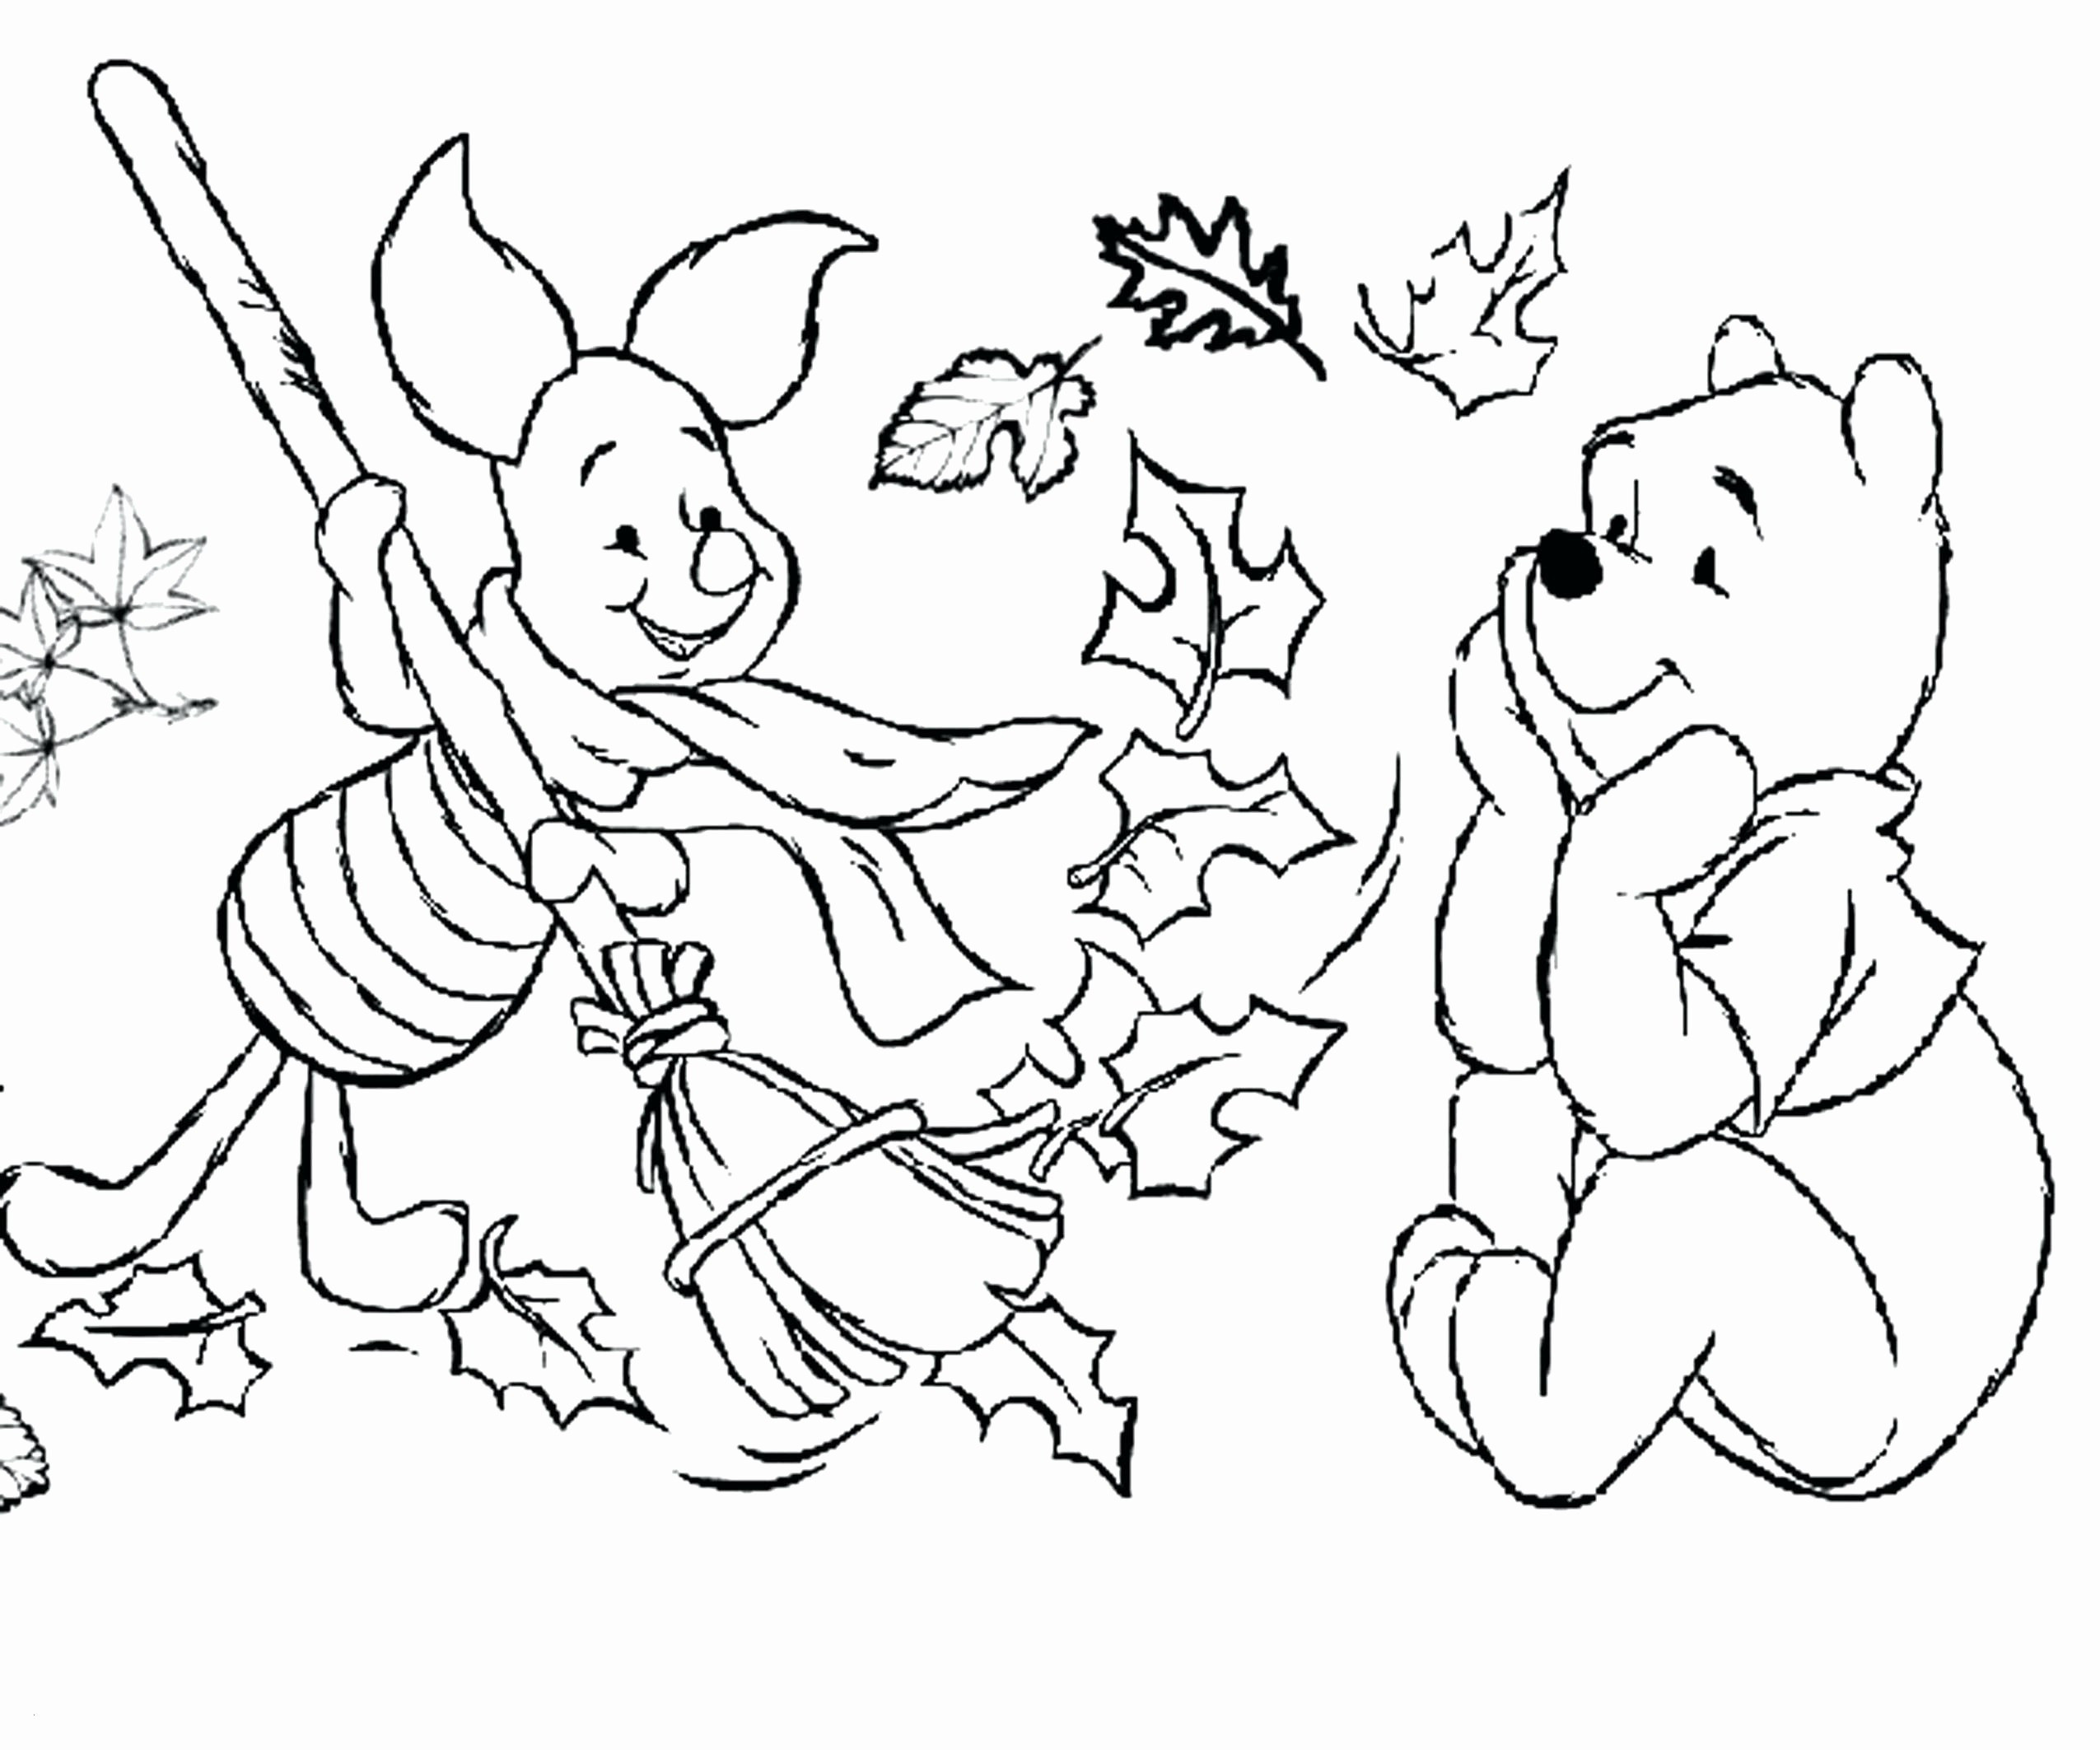 Robin Hood Ausmalbild Frisch Ausmalbilder I Love You Frisch Luxury sonic Coloring Pages Letramac Fotos